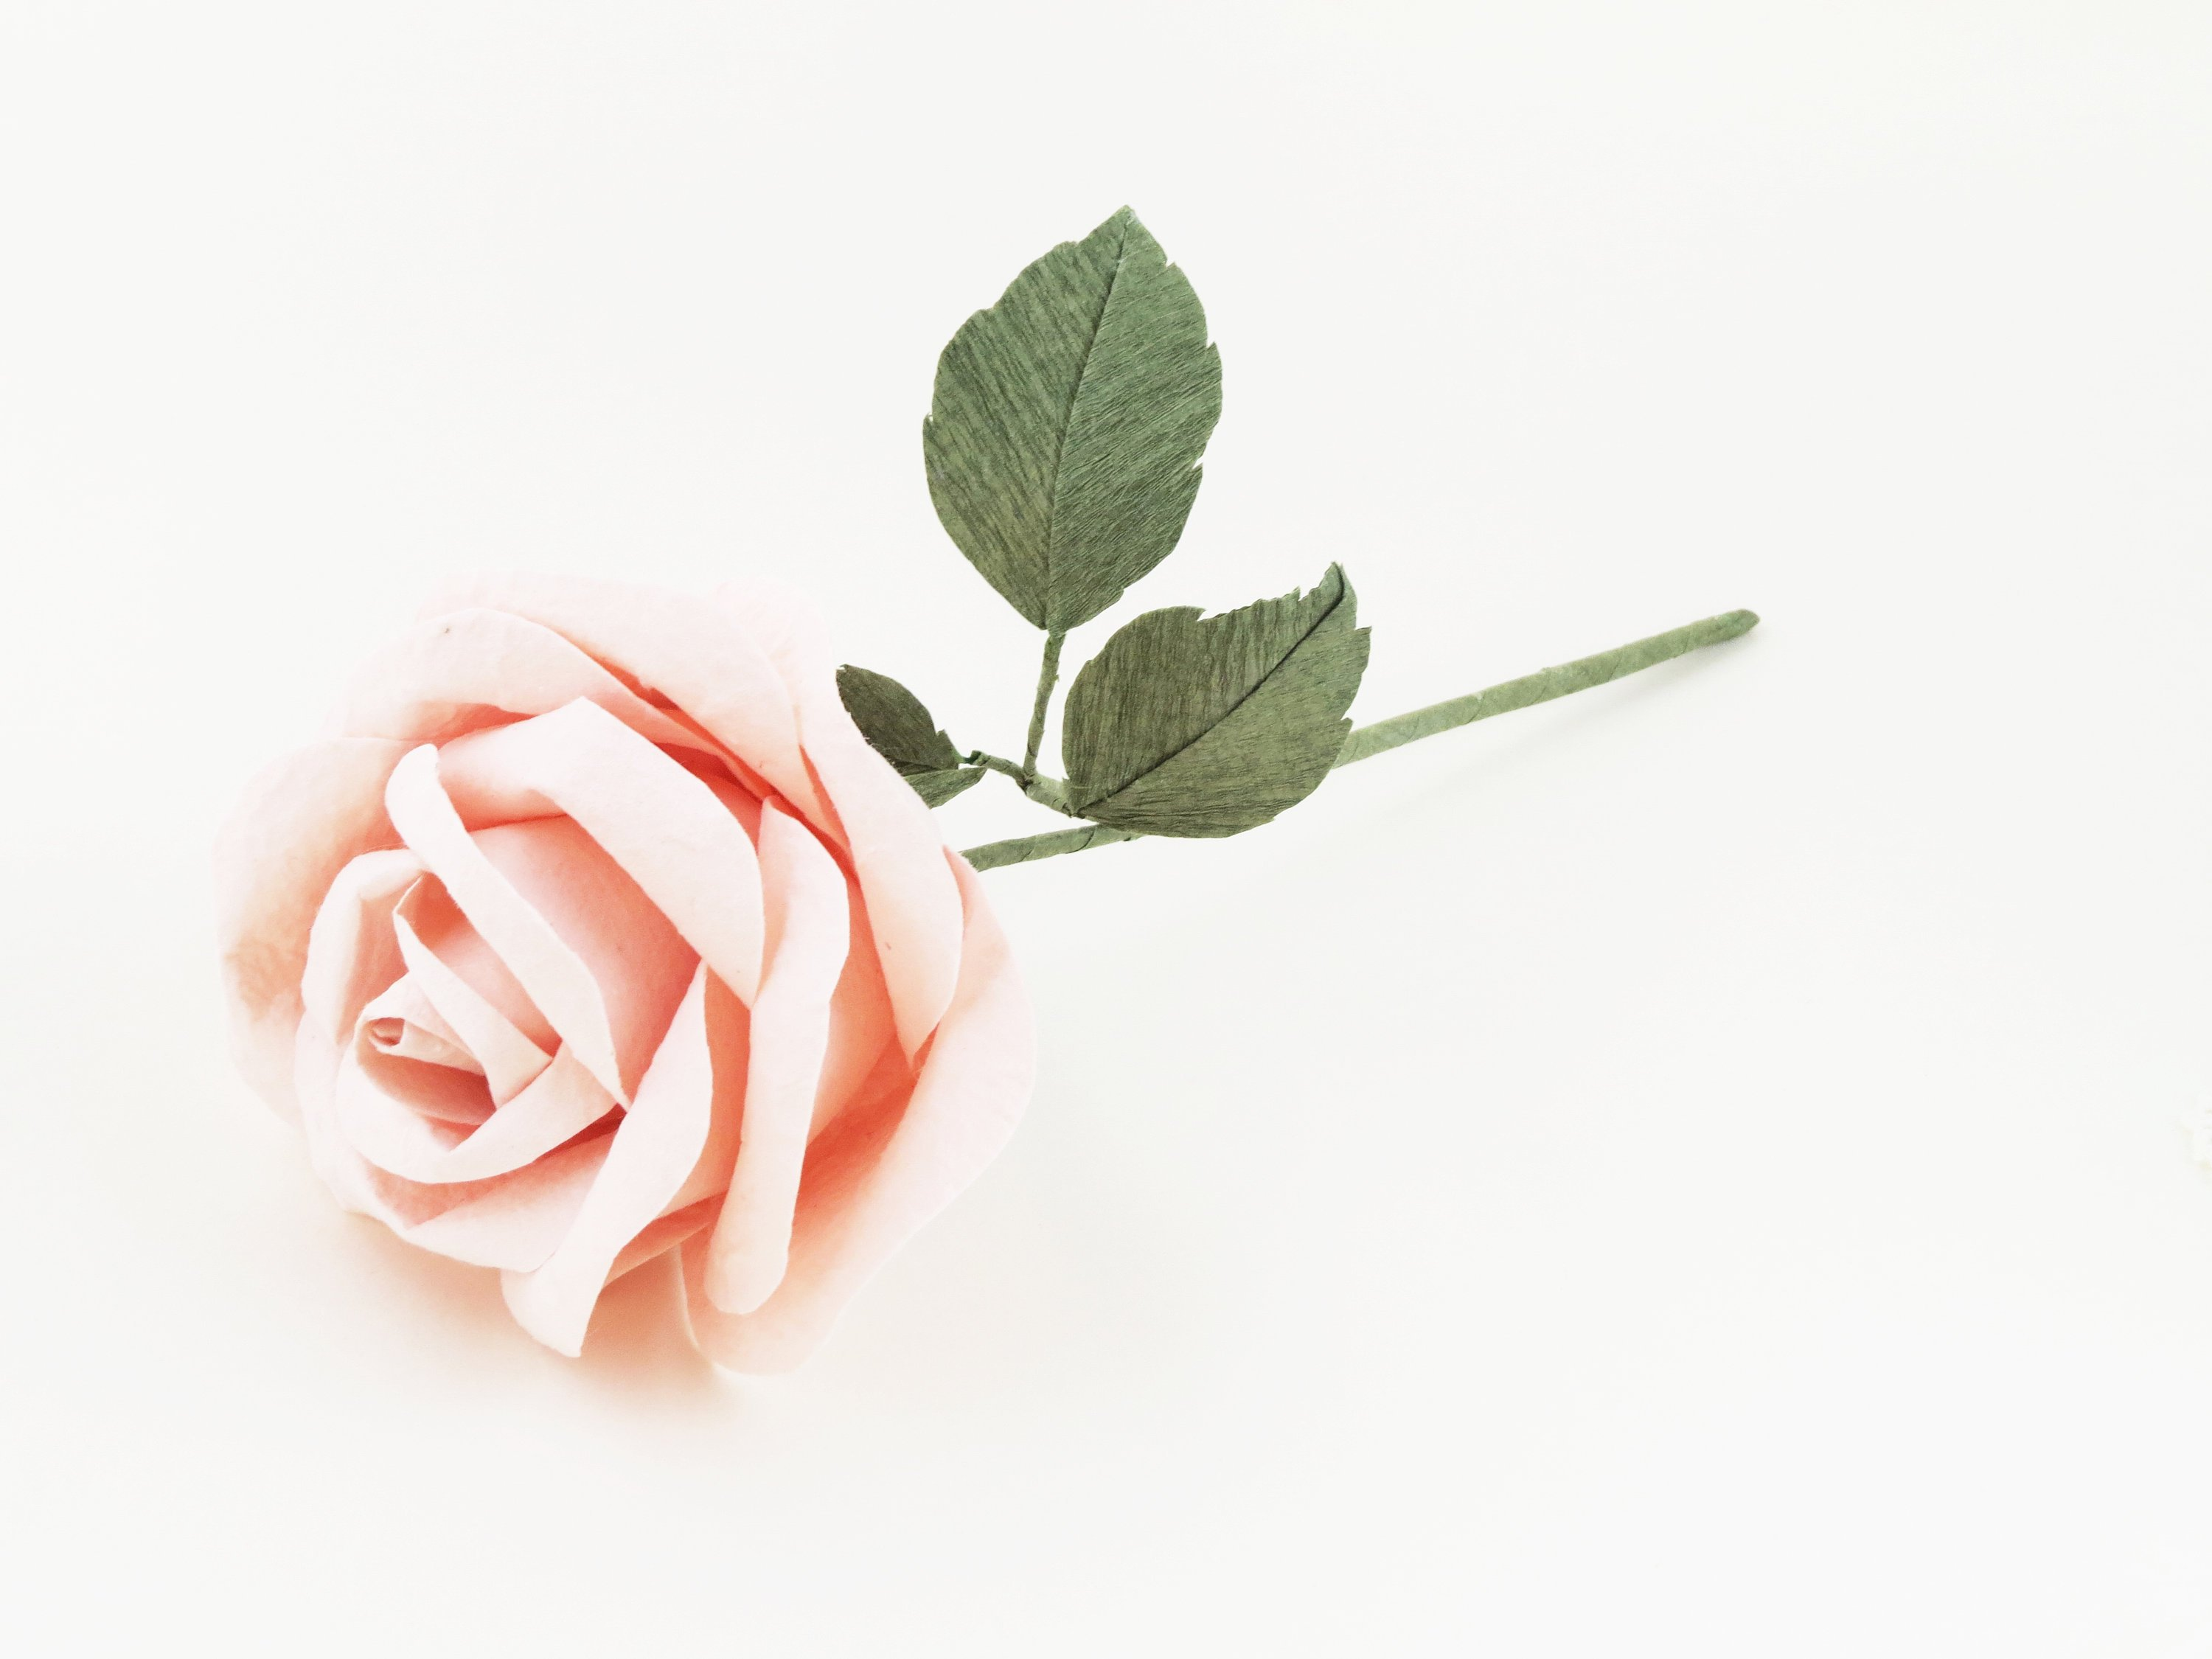 Paper rose from Etsy